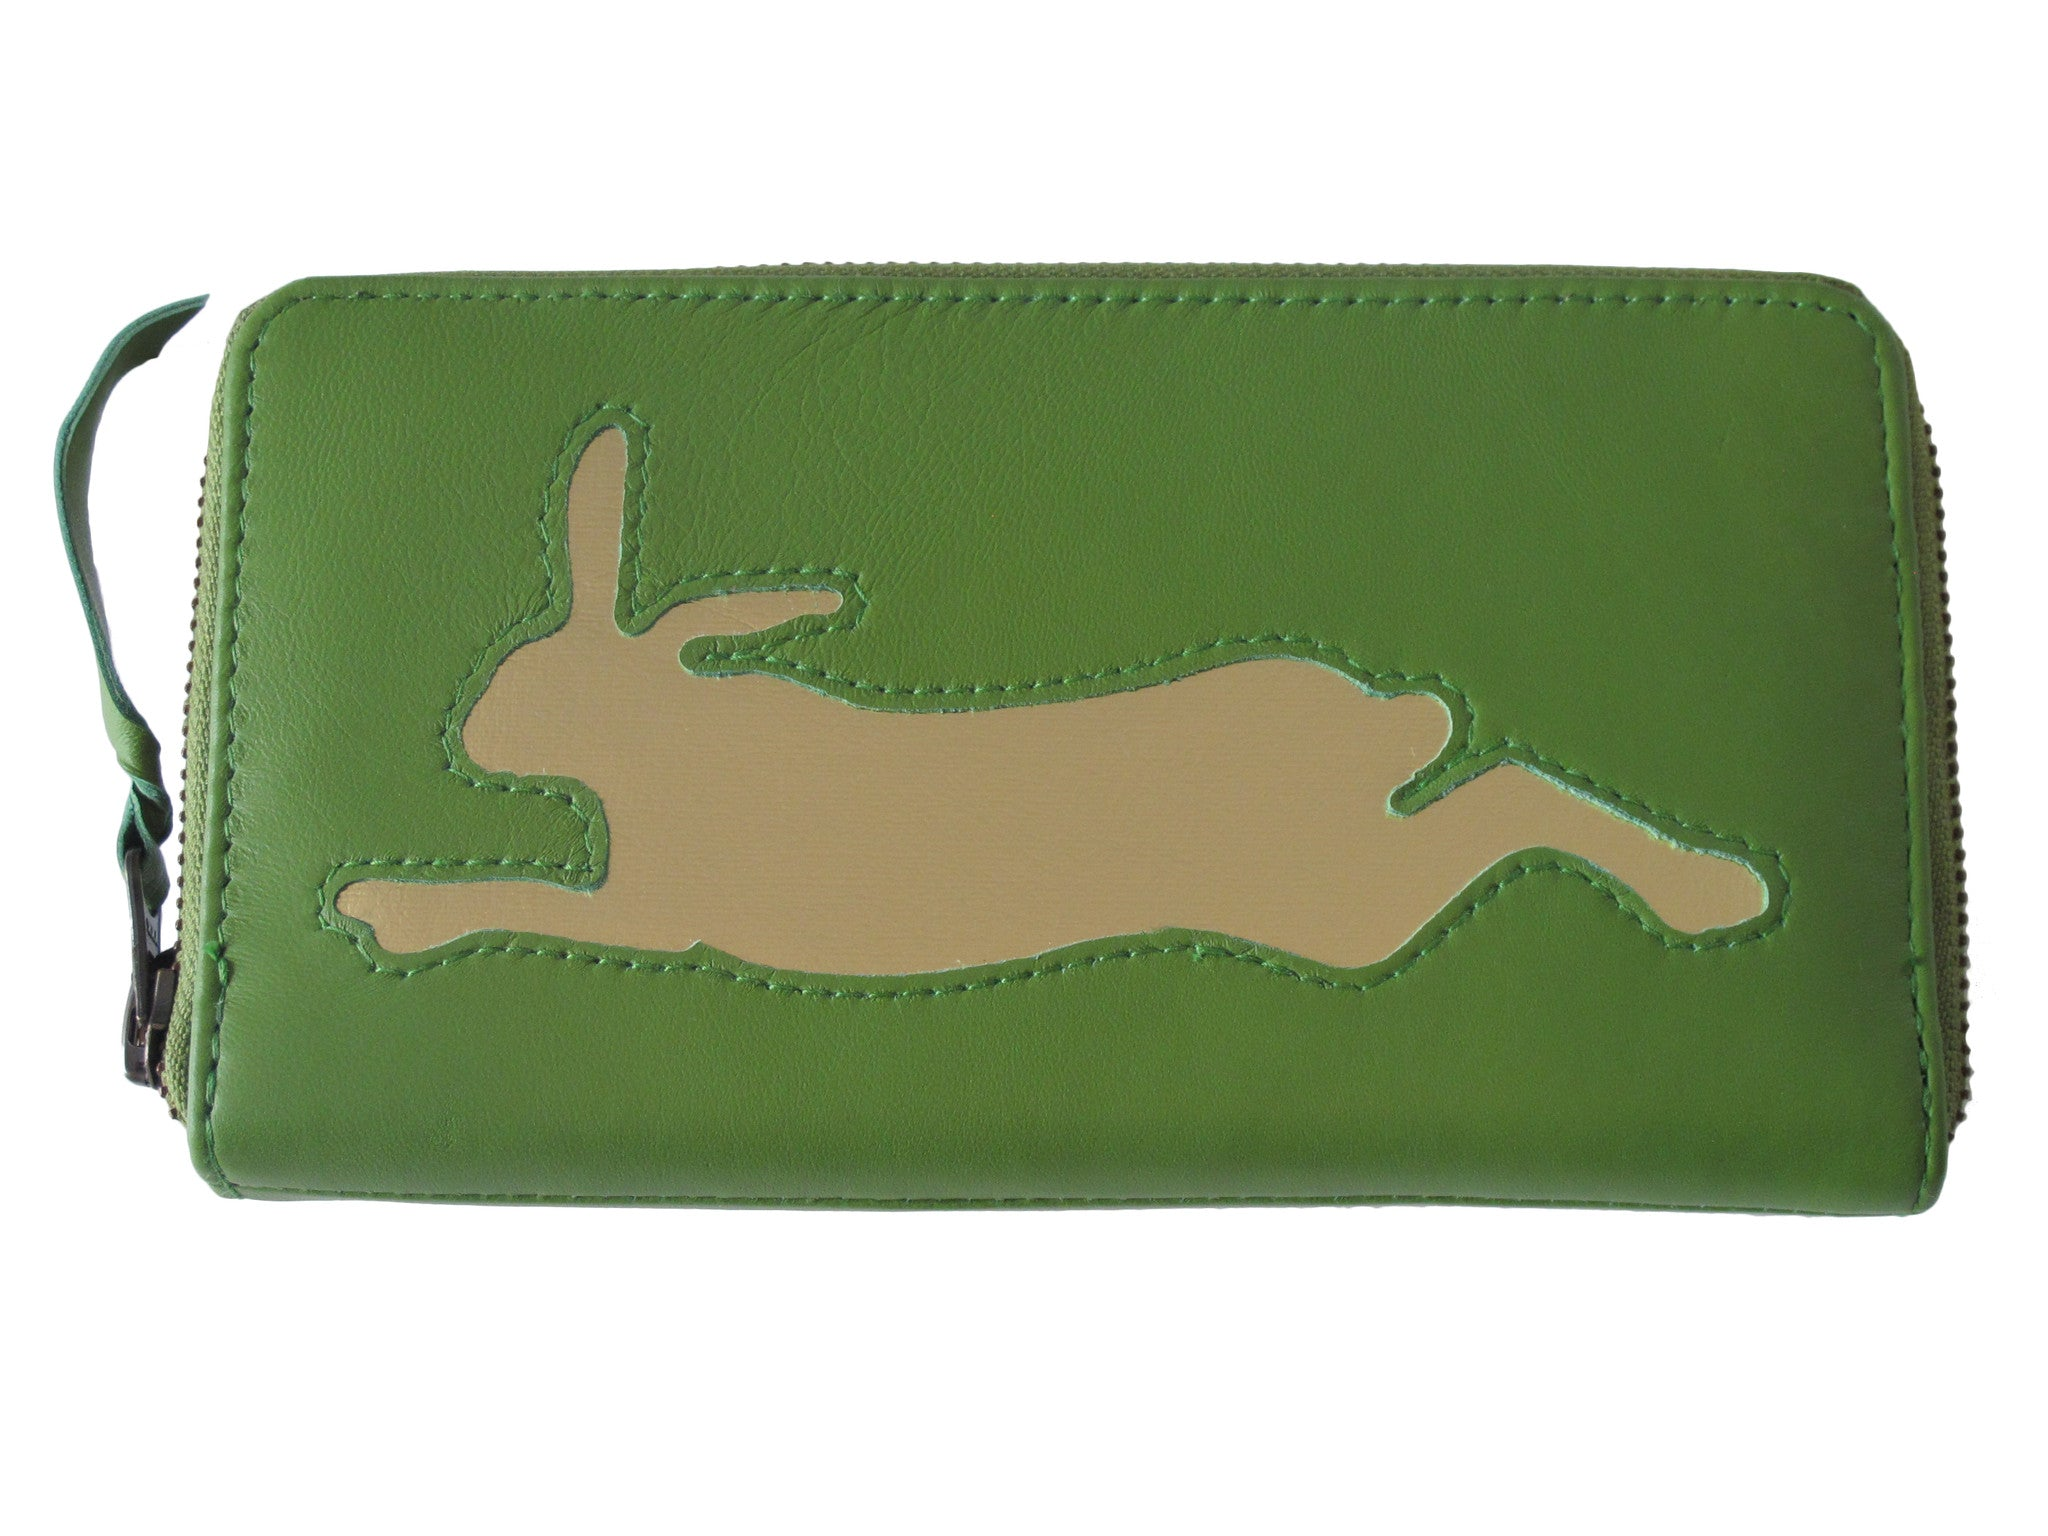 Apple Green Leather Hare Cut Out Purse